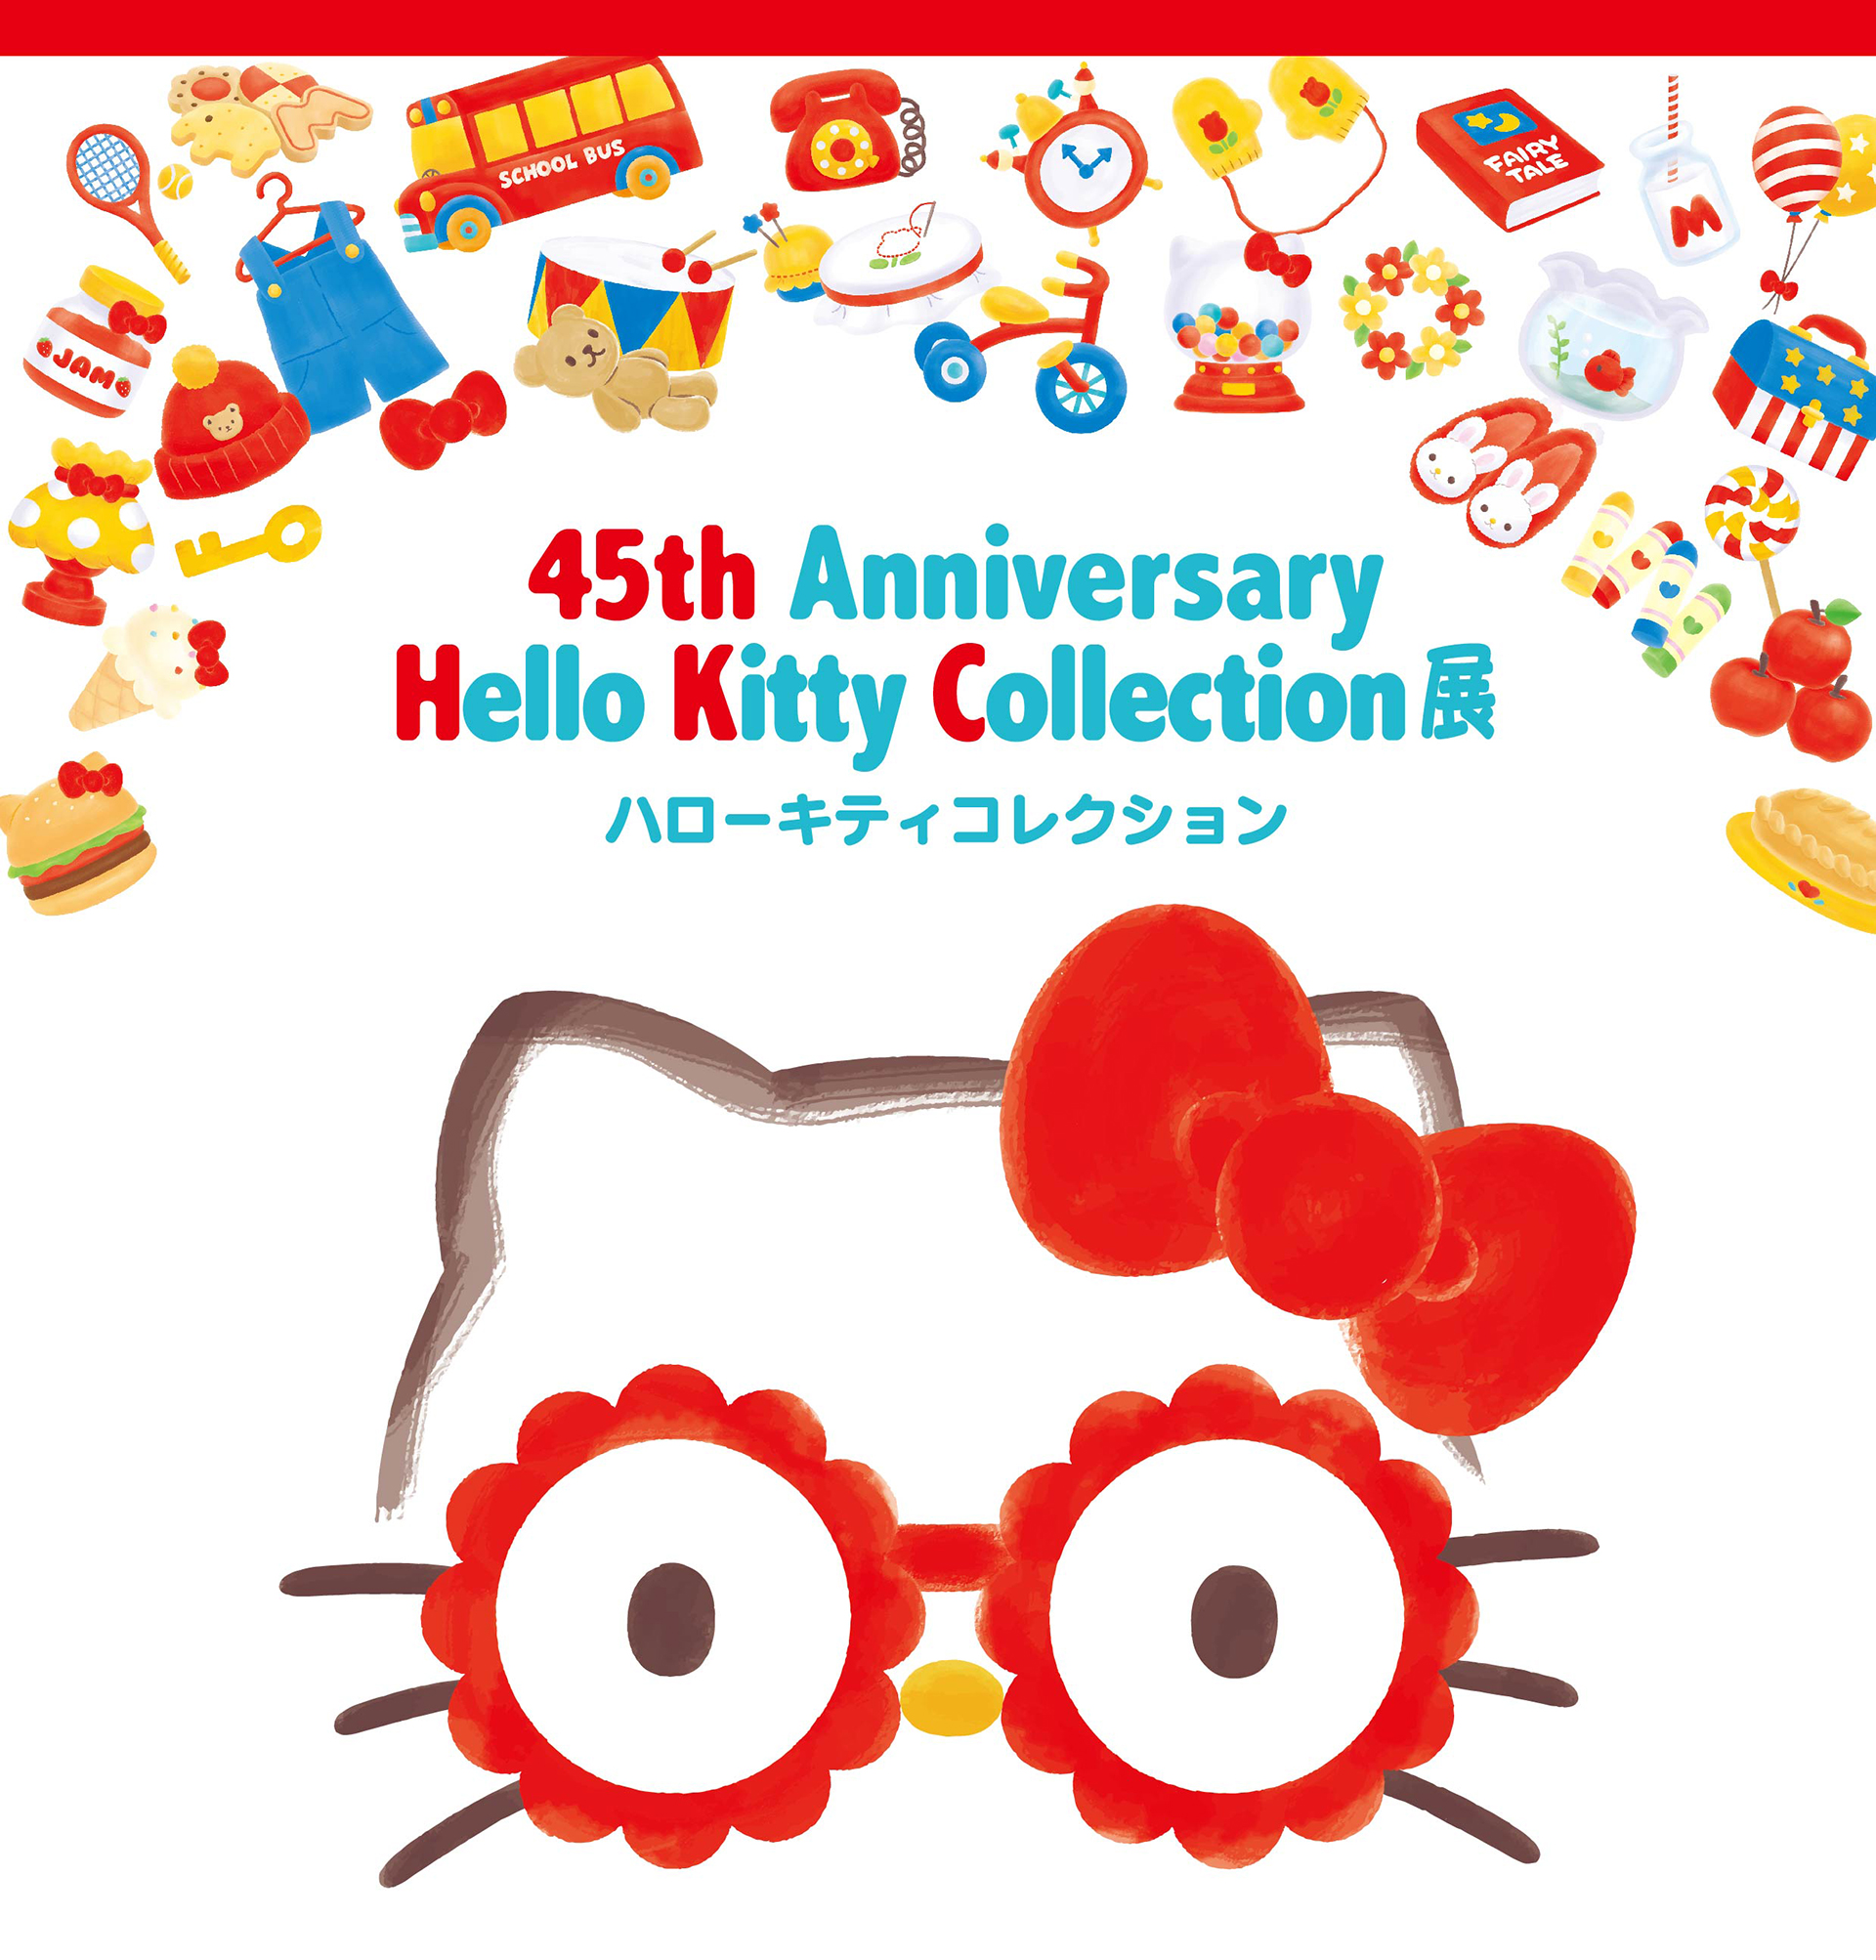 45th Anniversary Hello Kitty Collection展バナー